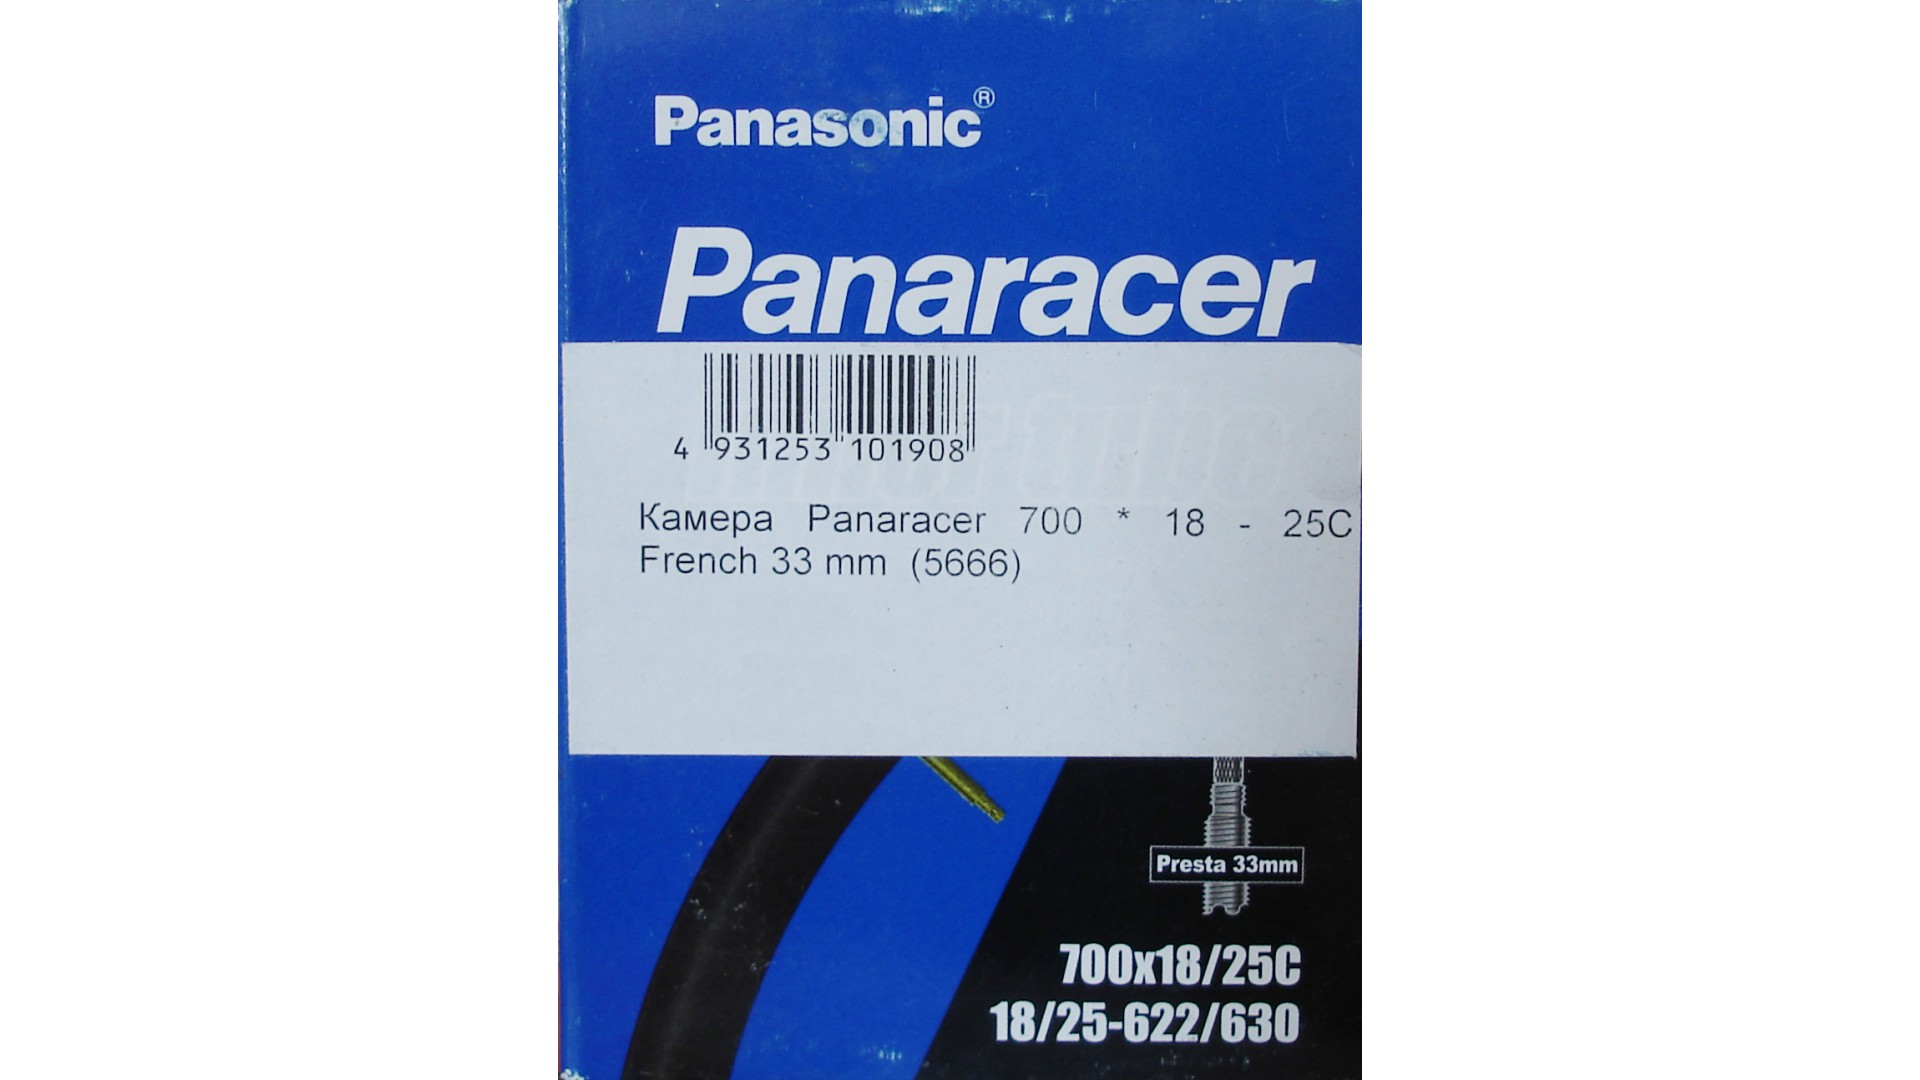 Камера Panaracer 700 x 18 - 25C French 33 mm